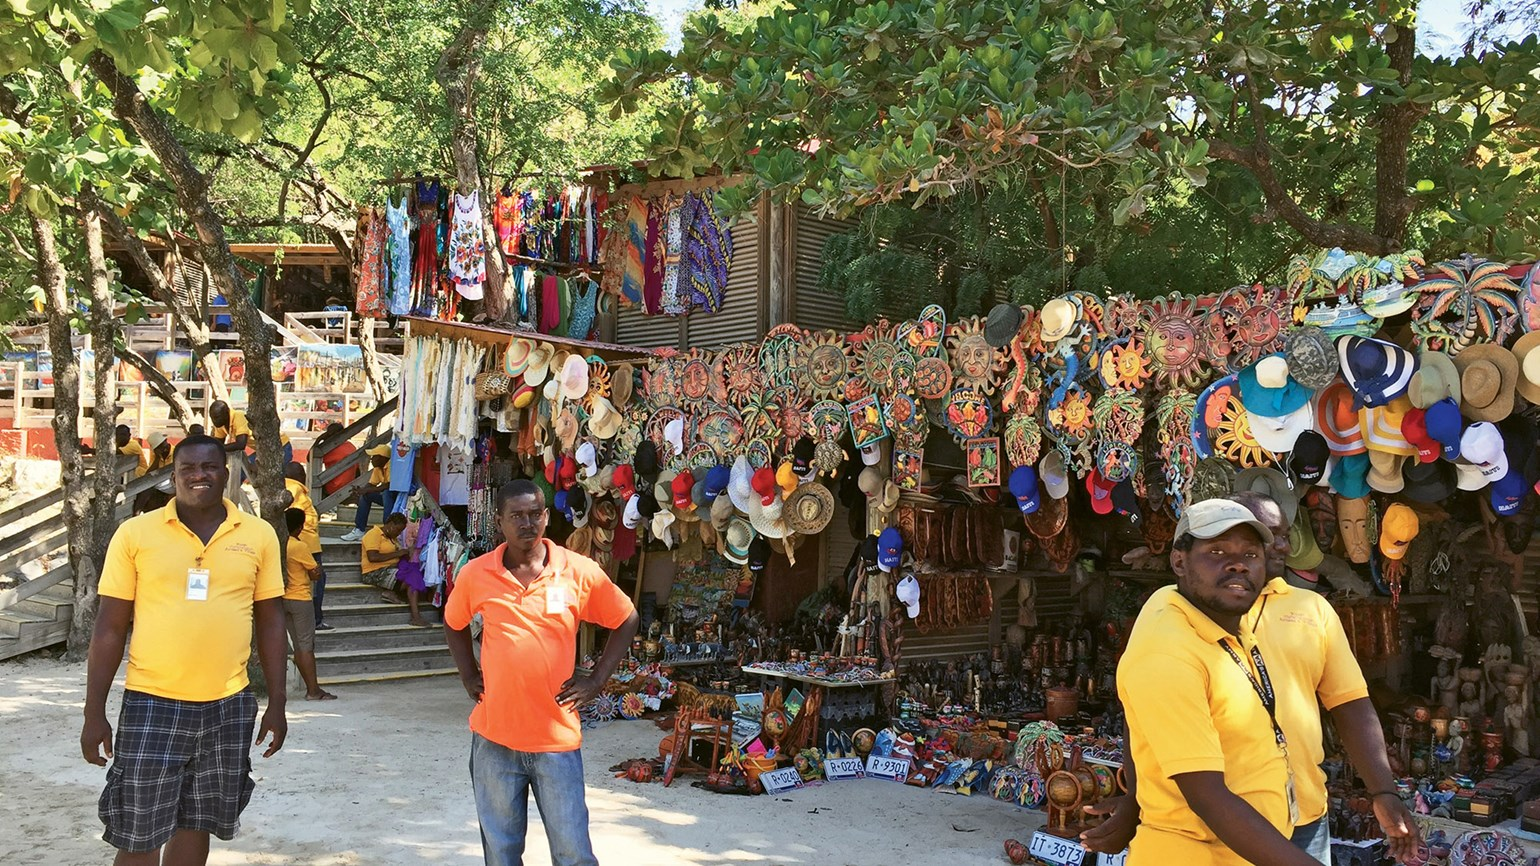 More than I bargained for at Labadee's Artisan's Market